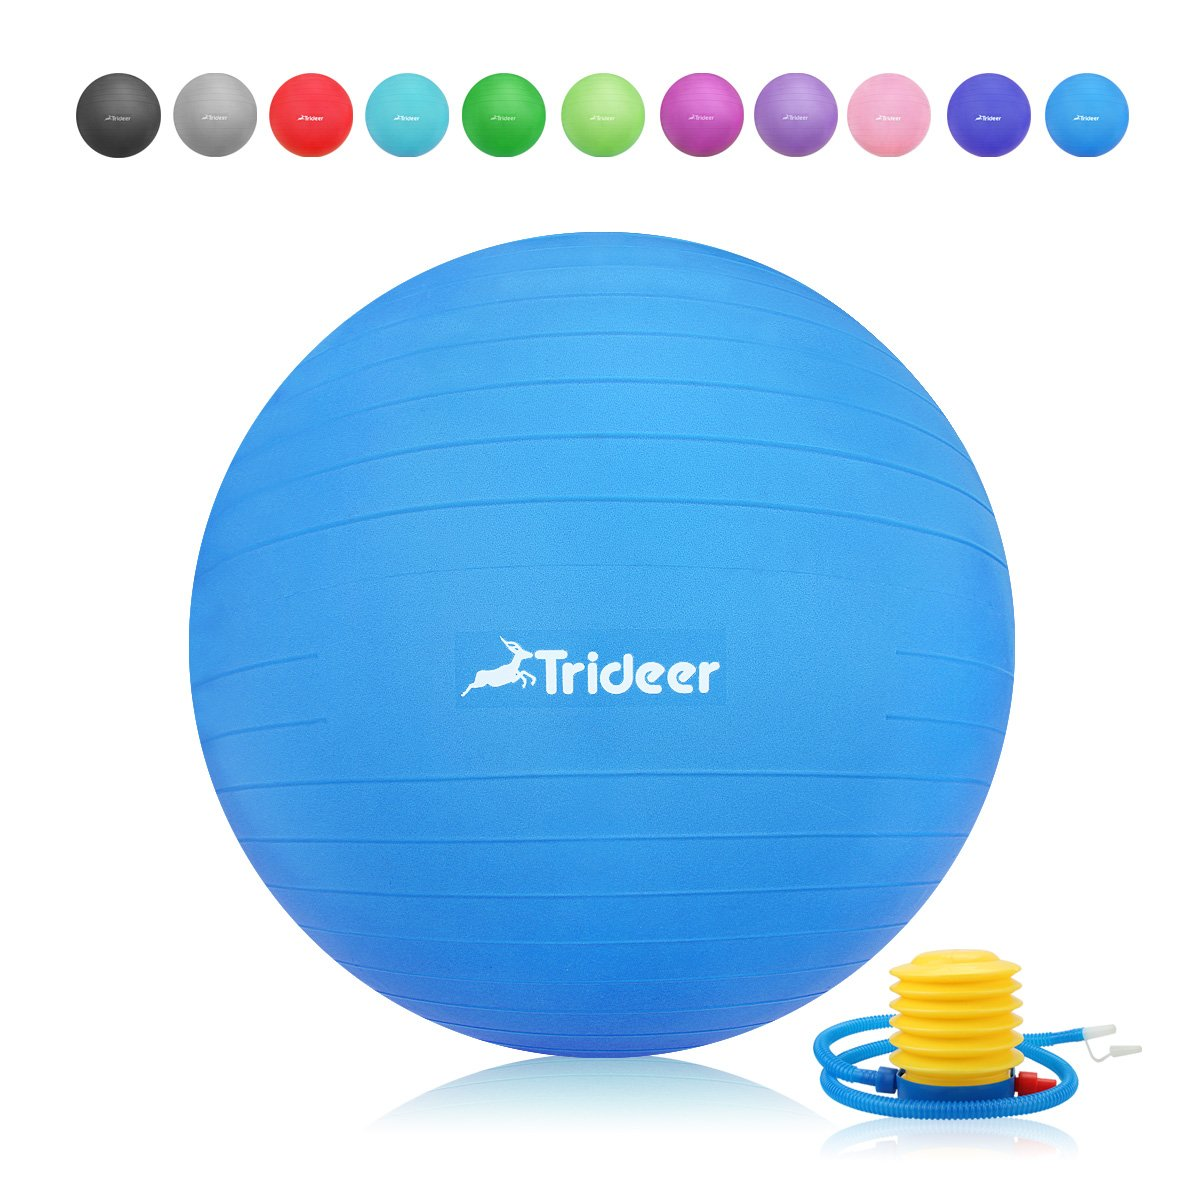 Trideer Exercise Ball, Yoga Ball, Birthing Ball with Quick Pump, Anti-Burst & Extra Thick, Heavy Duty Ball Chair, Stability Ball Supports 2200lbs (Office&Home) (Dark Blue, S (38-45cm))